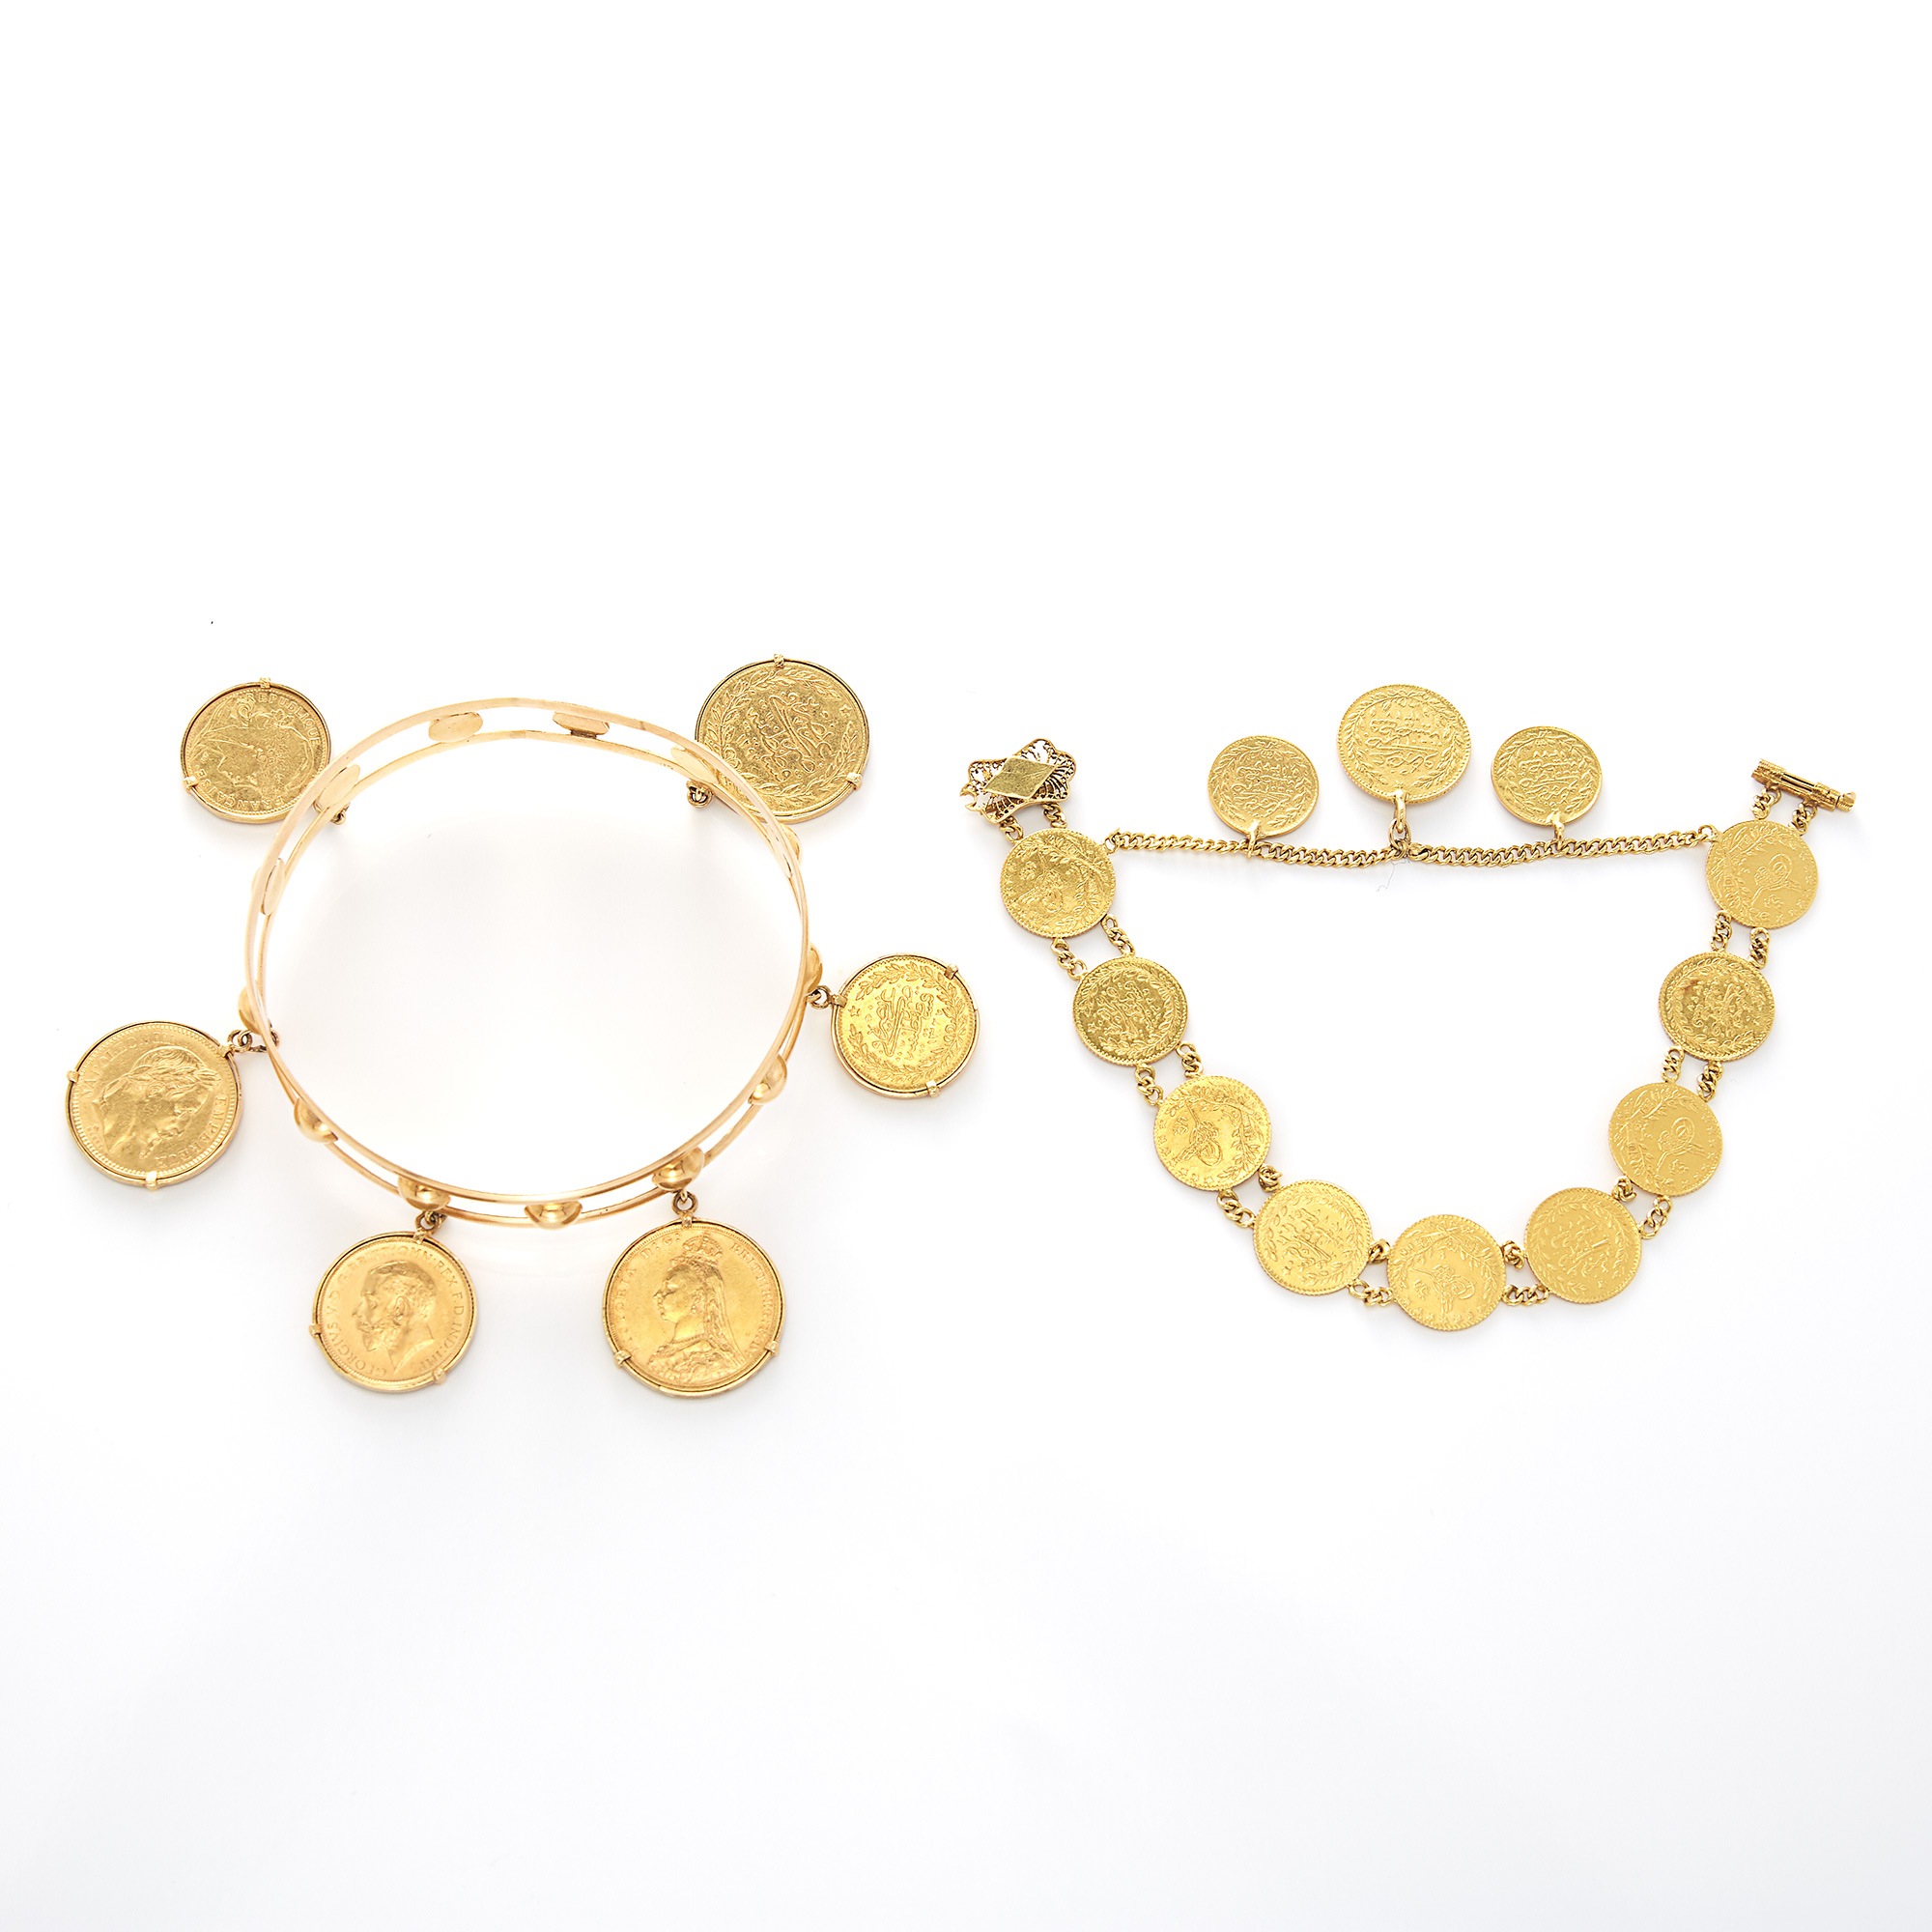 Lot image - Gold and Gold Coin Bracelet and Bangle Bracelet